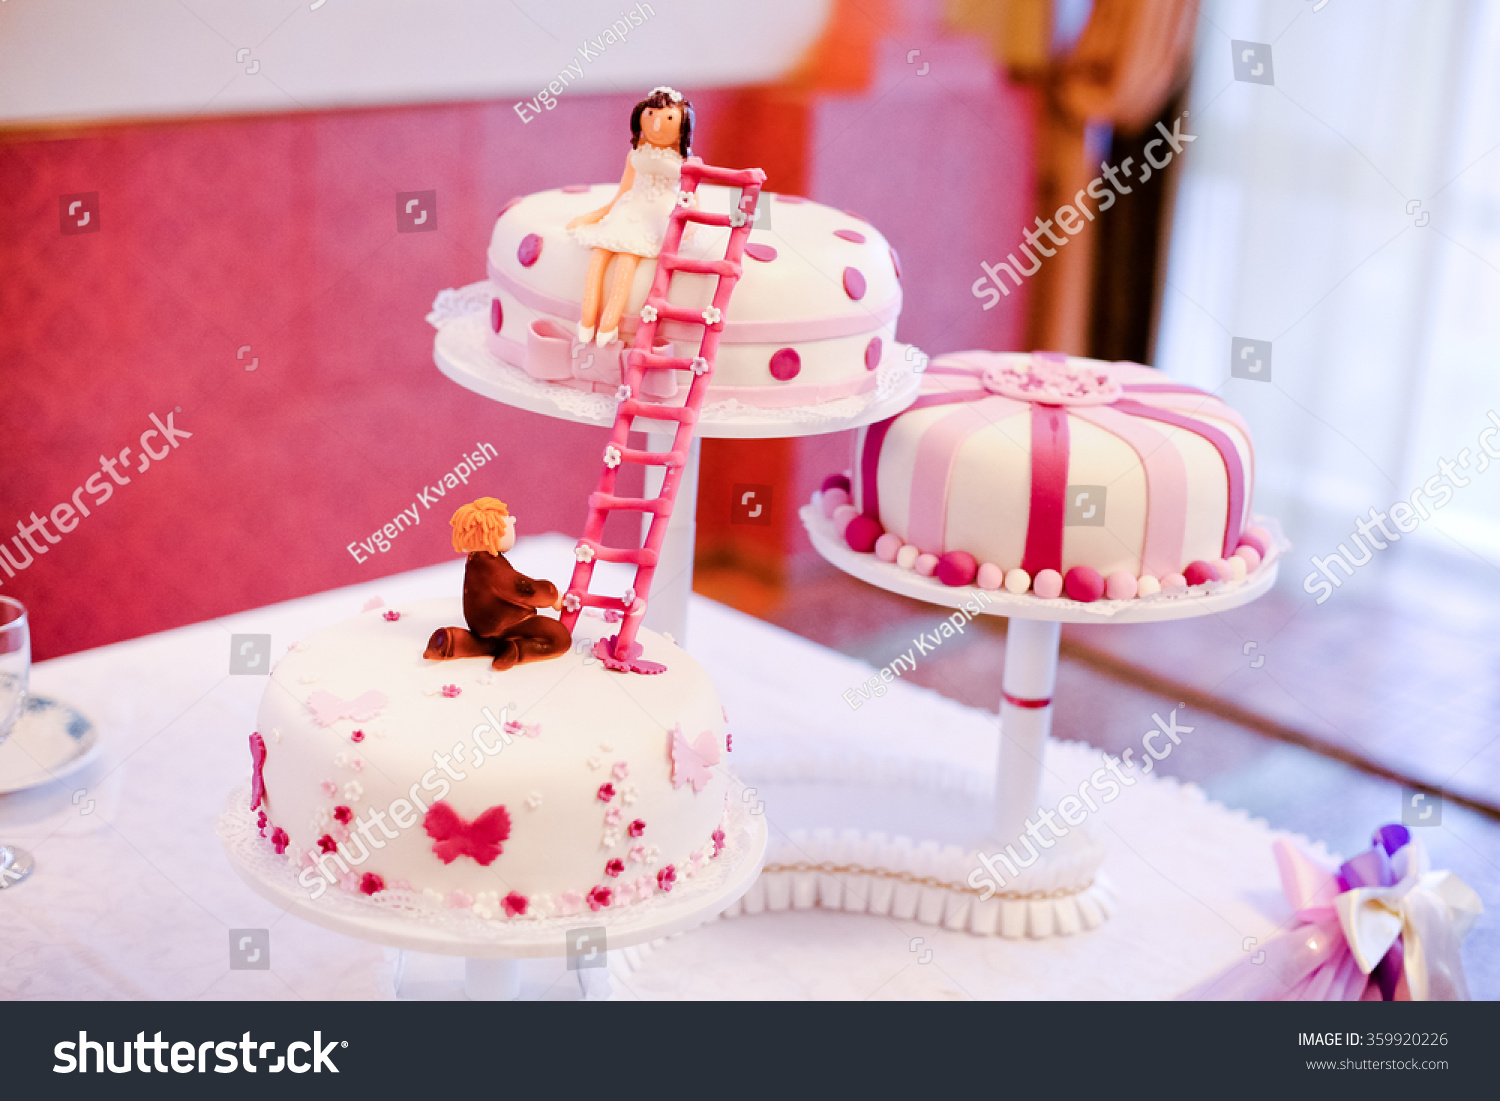 Royalty-free Wedding cake round pink and white with… #359920226 ...